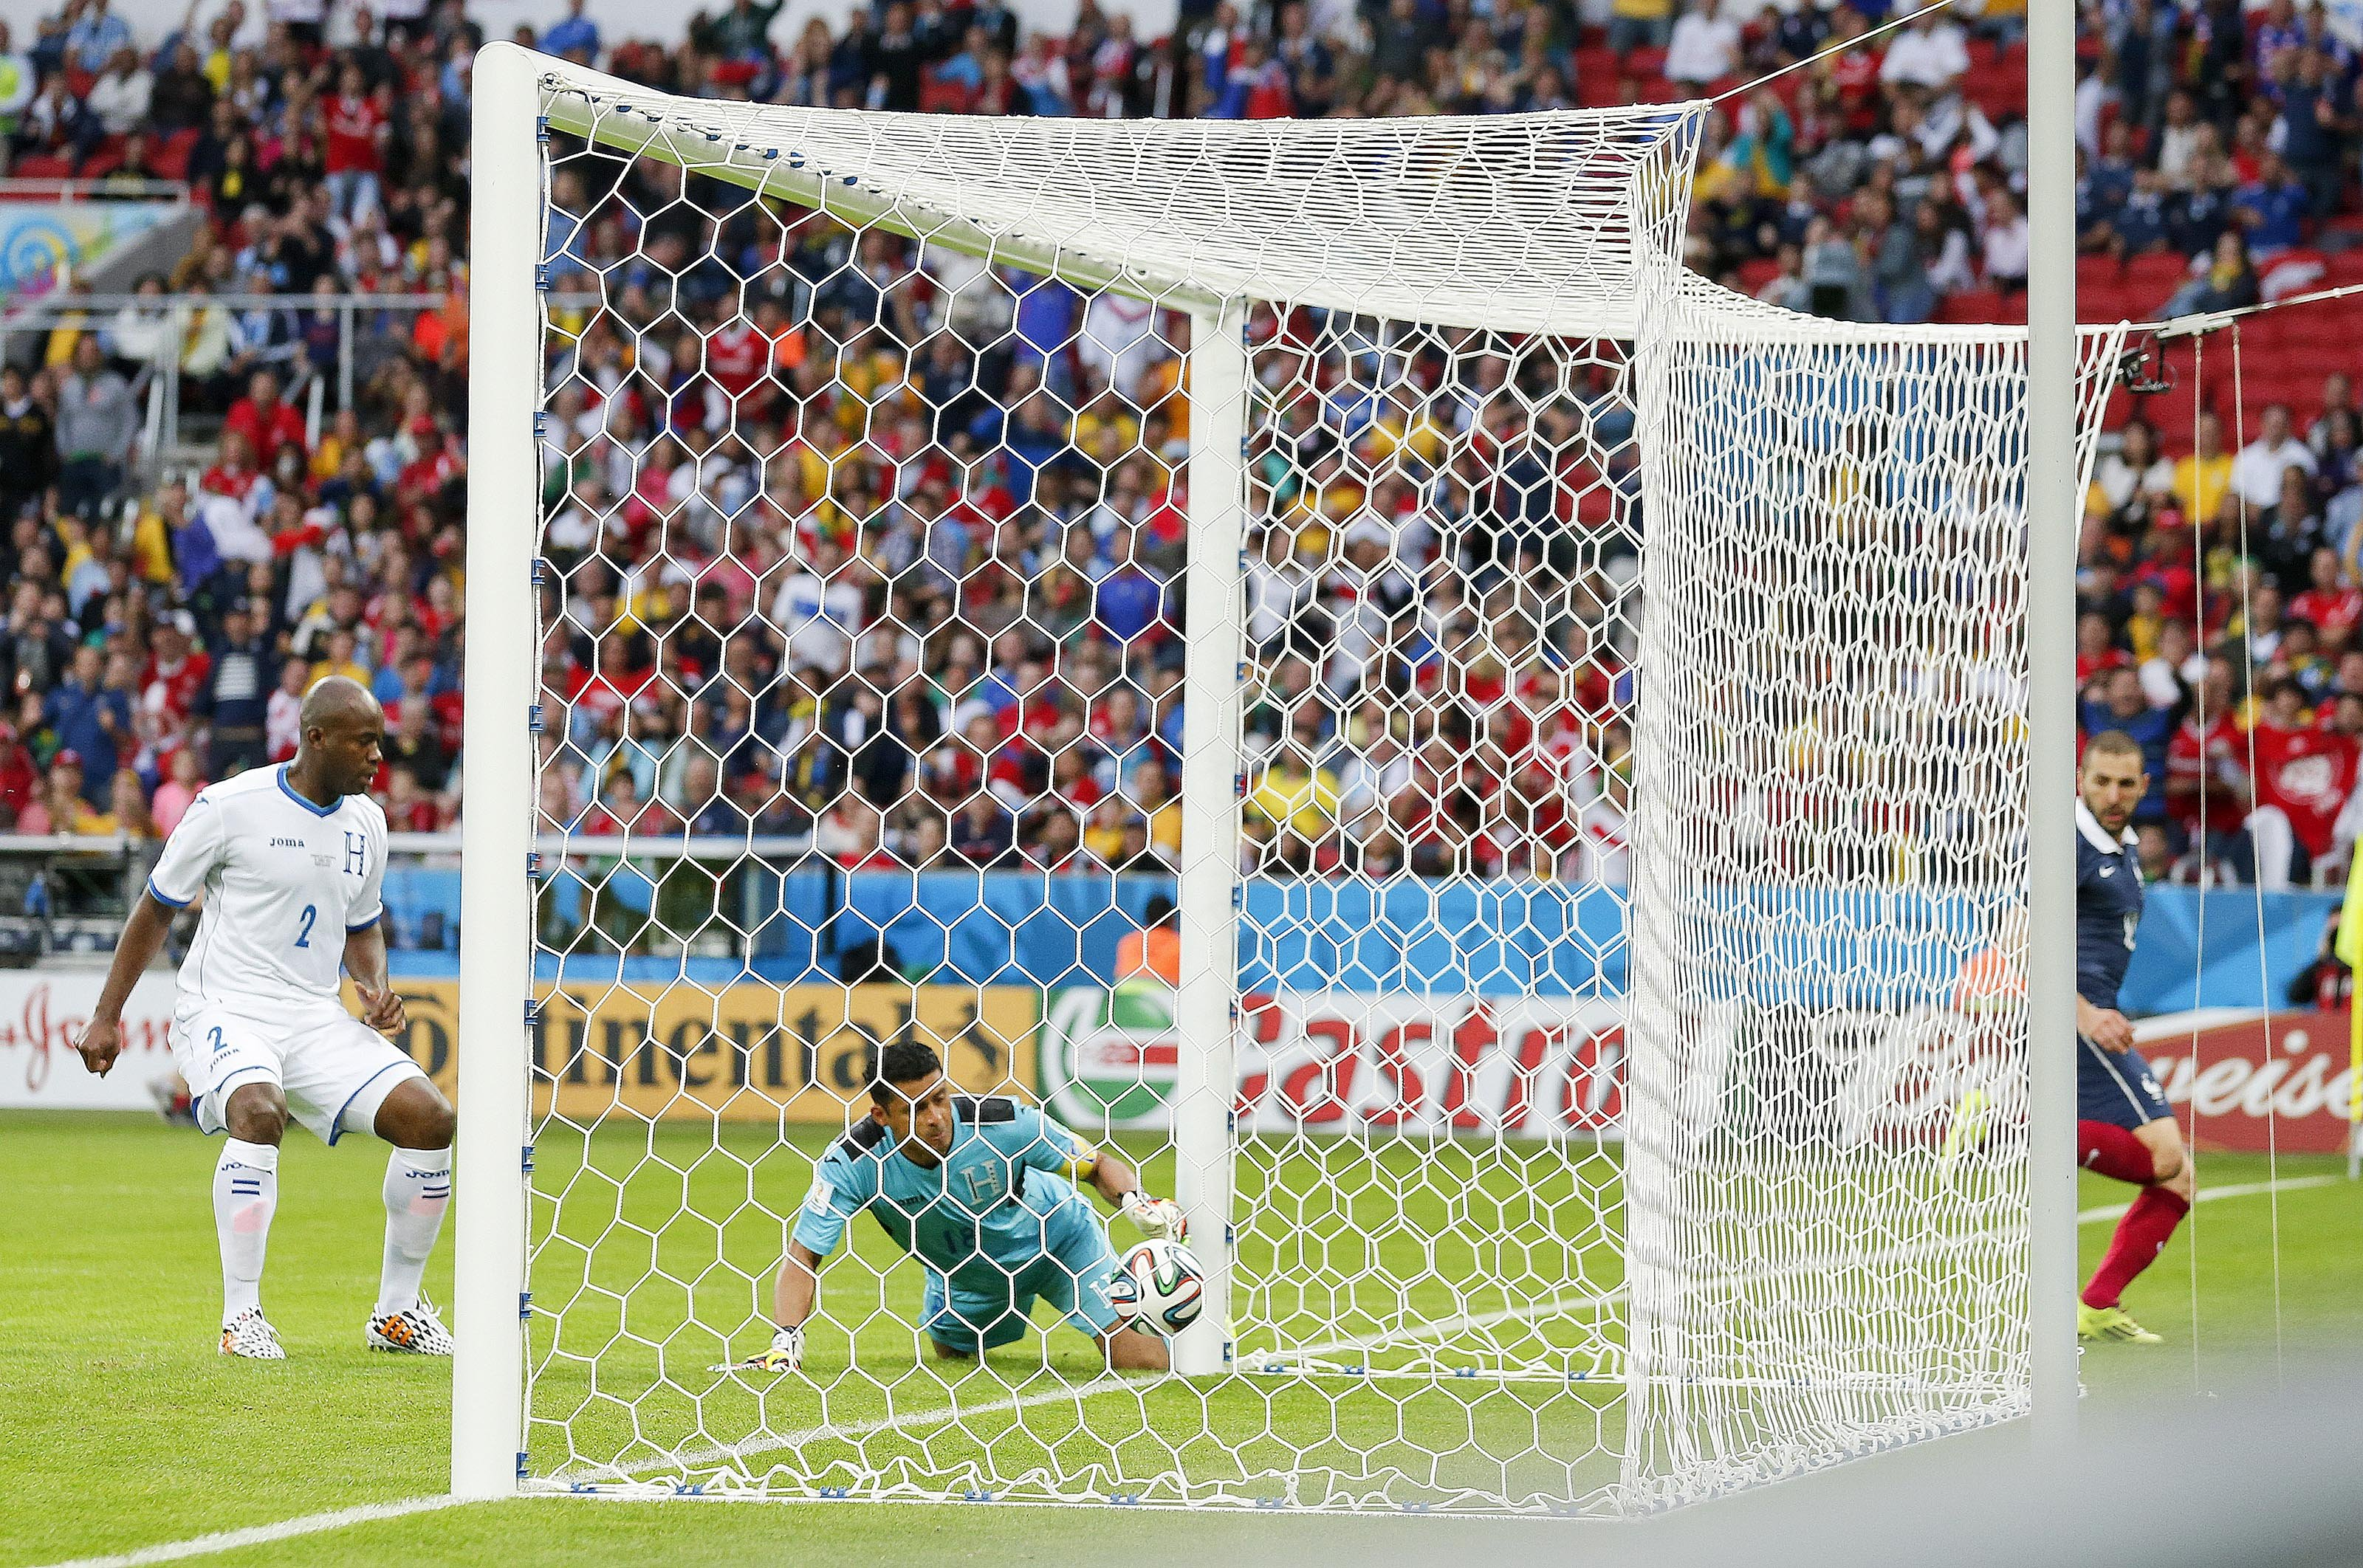 Honduras' goalkeeper Noel Valladares bundles a shot from France's Karim Benzema, far right, into his net for an own goal during the group E World Cup soccer match between France and Honduras at the Estadio Beira-Rio in Porto Alegre, Brazil on June 15, 2014.